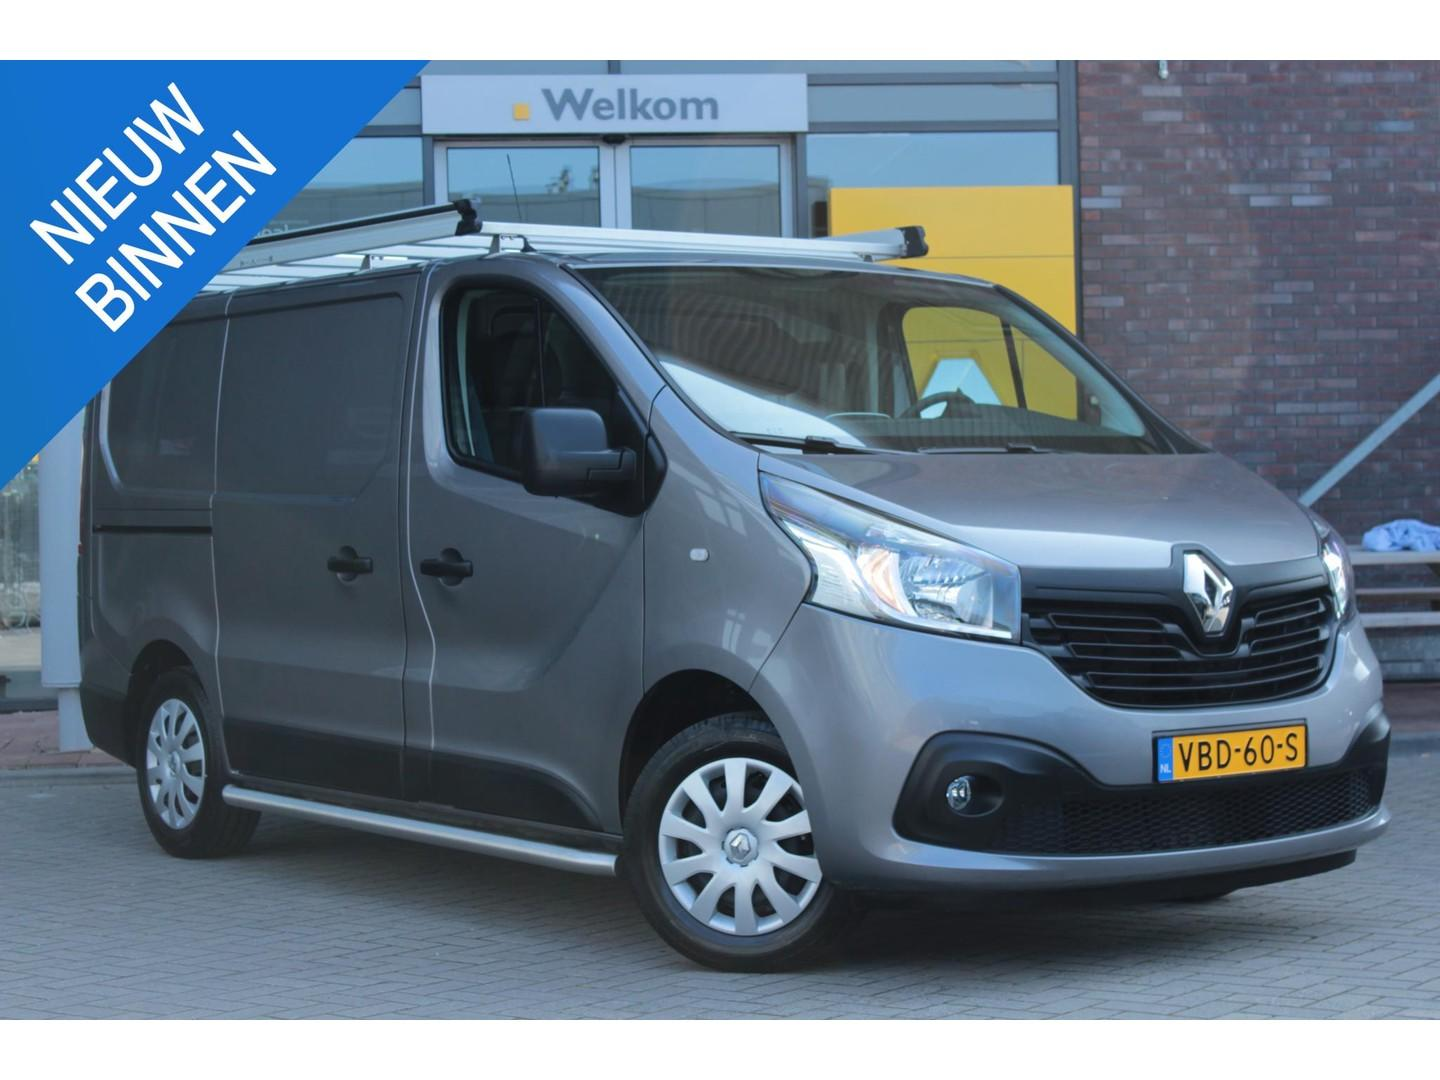 Renault Trafic 1.6 dci 120pk t27 l1h1 work edition energy